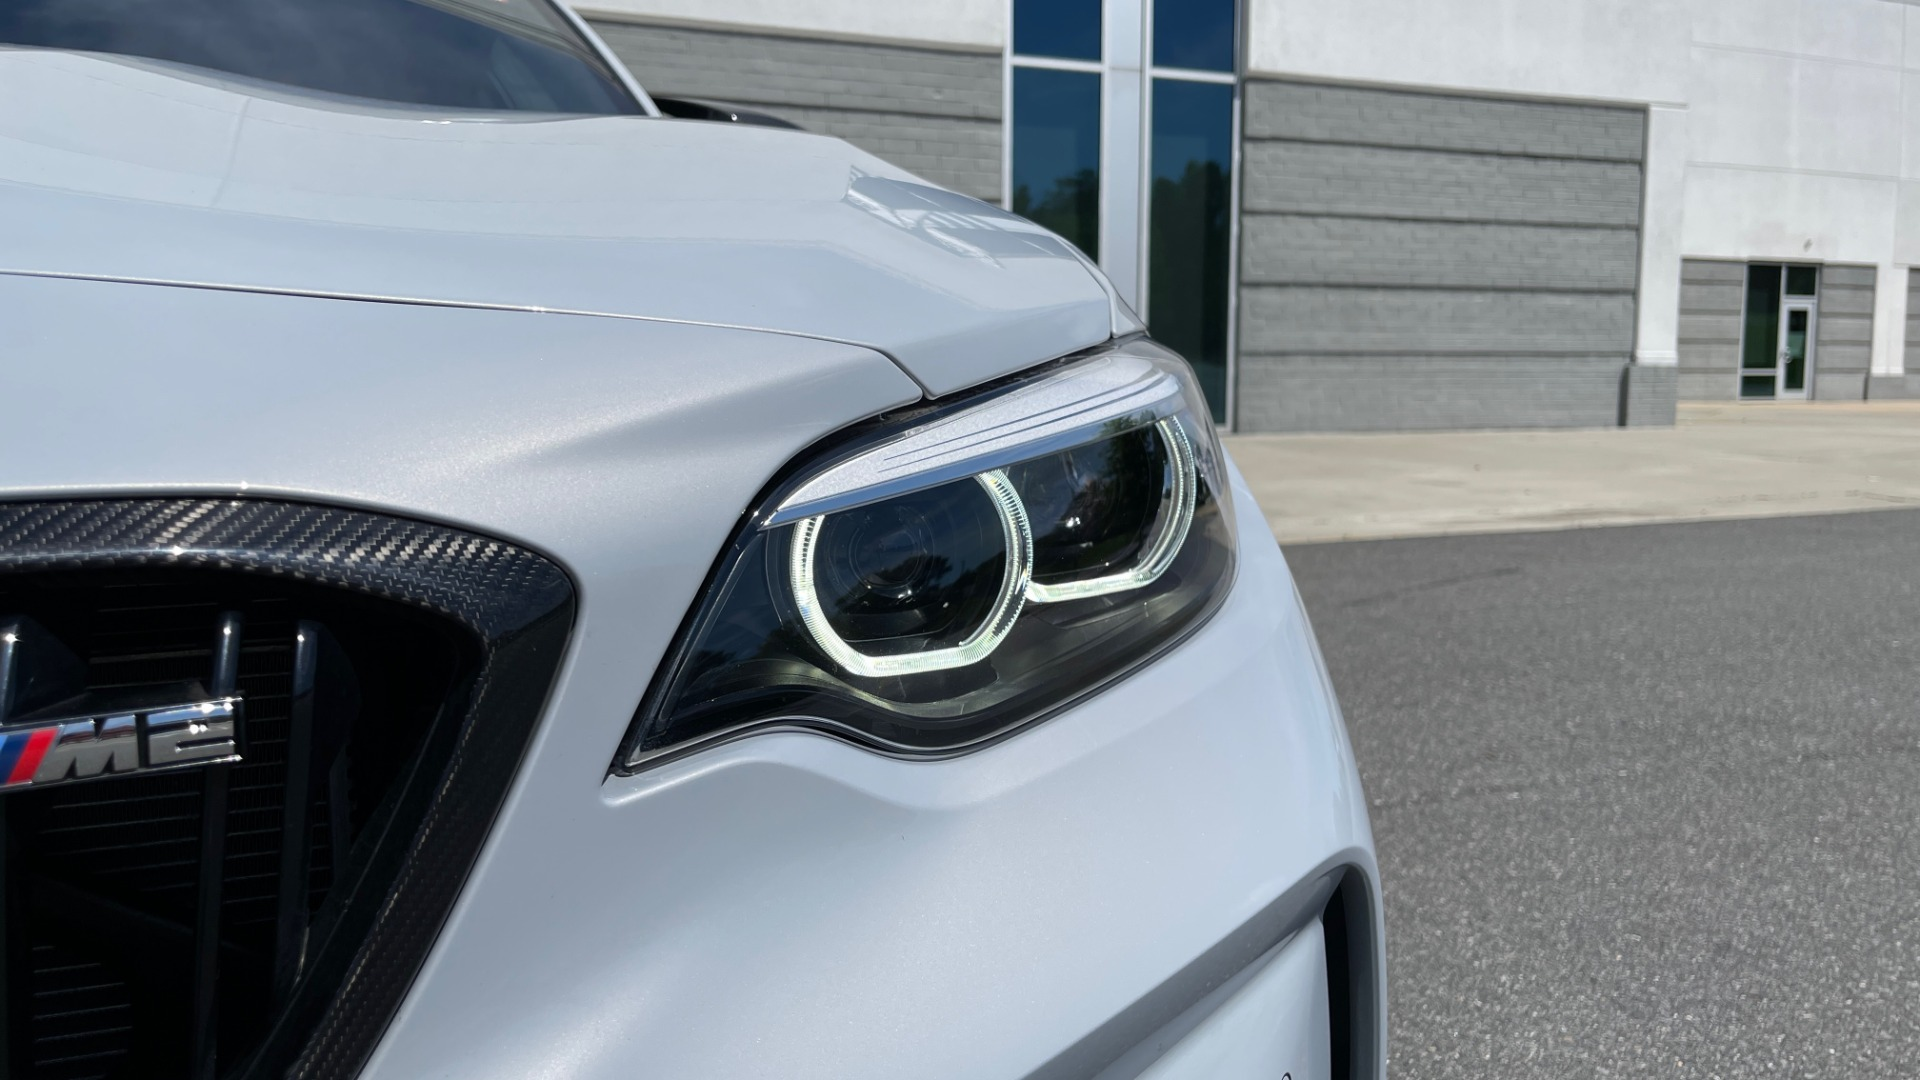 Used 2020 BMW M2 COMPETITION 405HP / COUPE / MANUAL / NAV / H/K SOUND / REARVIEW for sale $64,388 at Formula Imports in Charlotte NC 28227 16